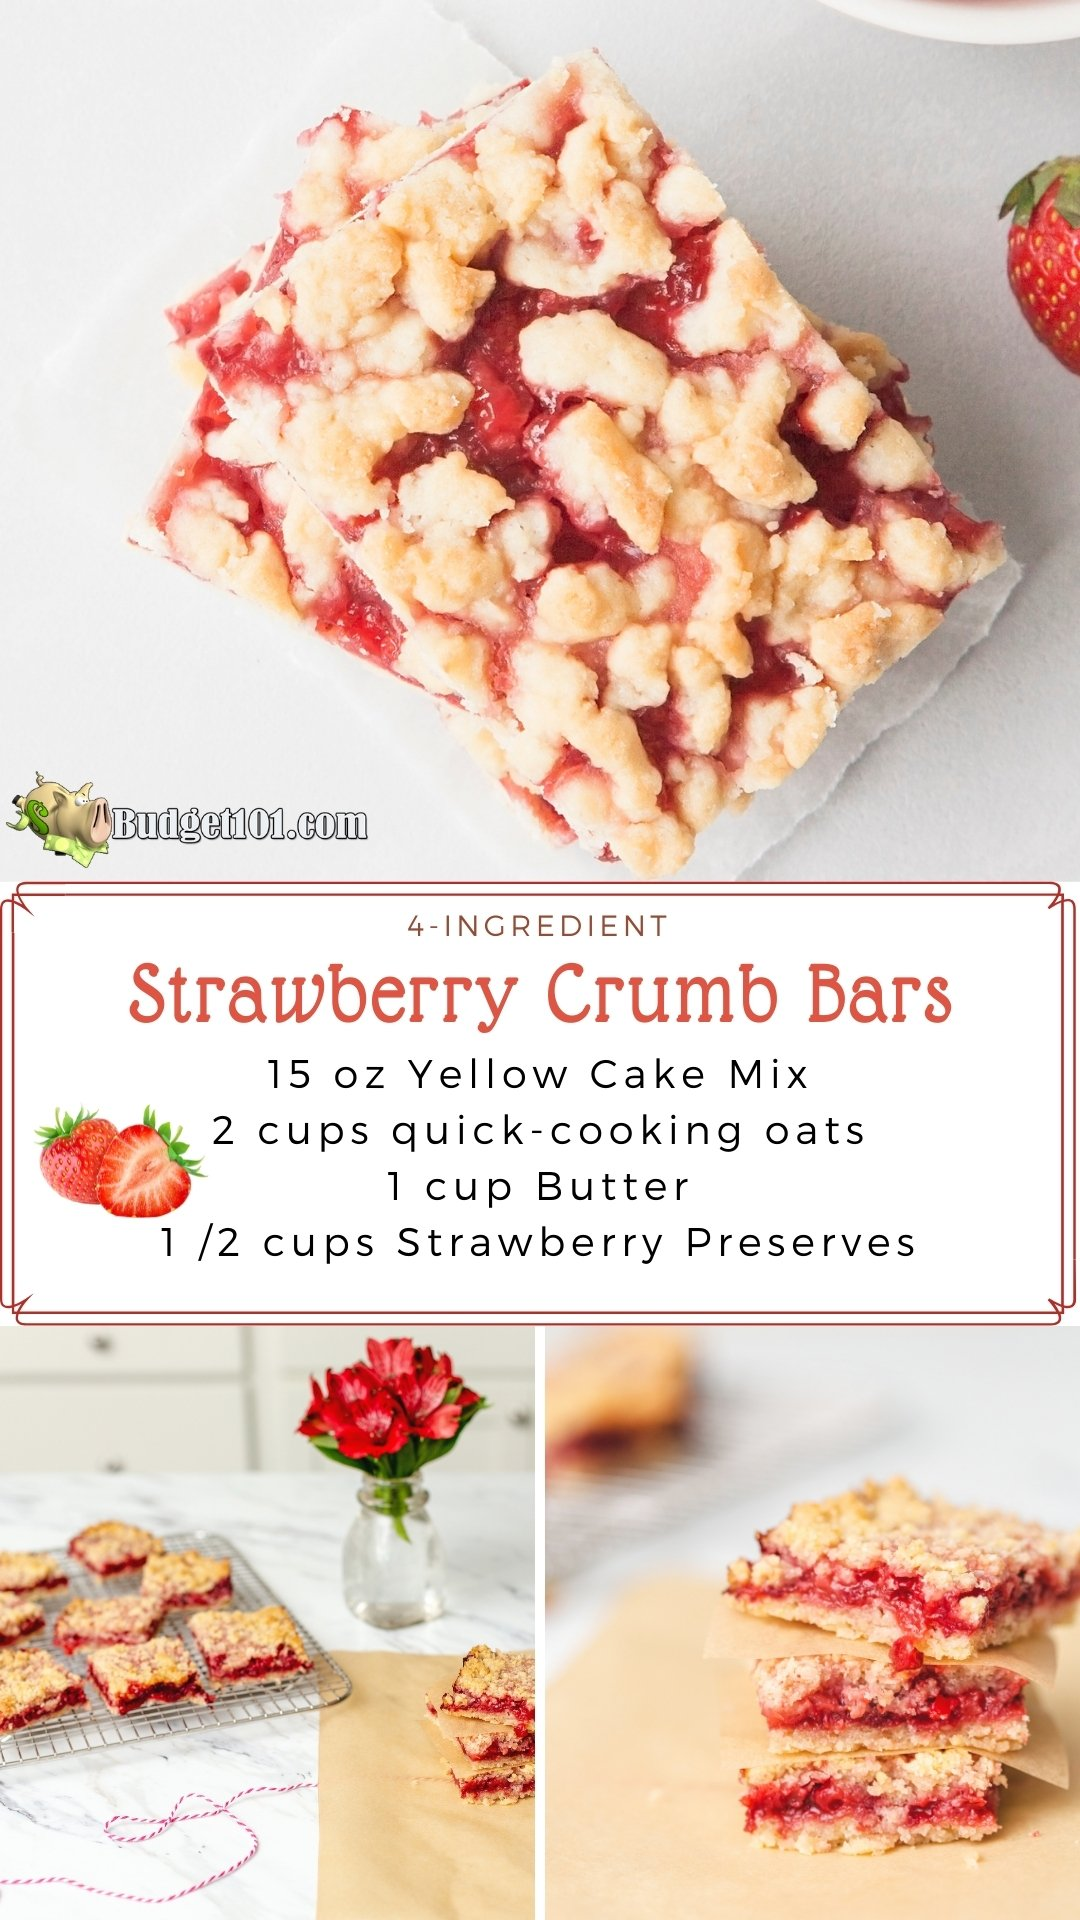 4-ingredient strawberry crumb bars- grab a cake mix, some oats, butter, and strawberry jam to make these delicious quick bars #cakemix #budget101 #strawberrybars